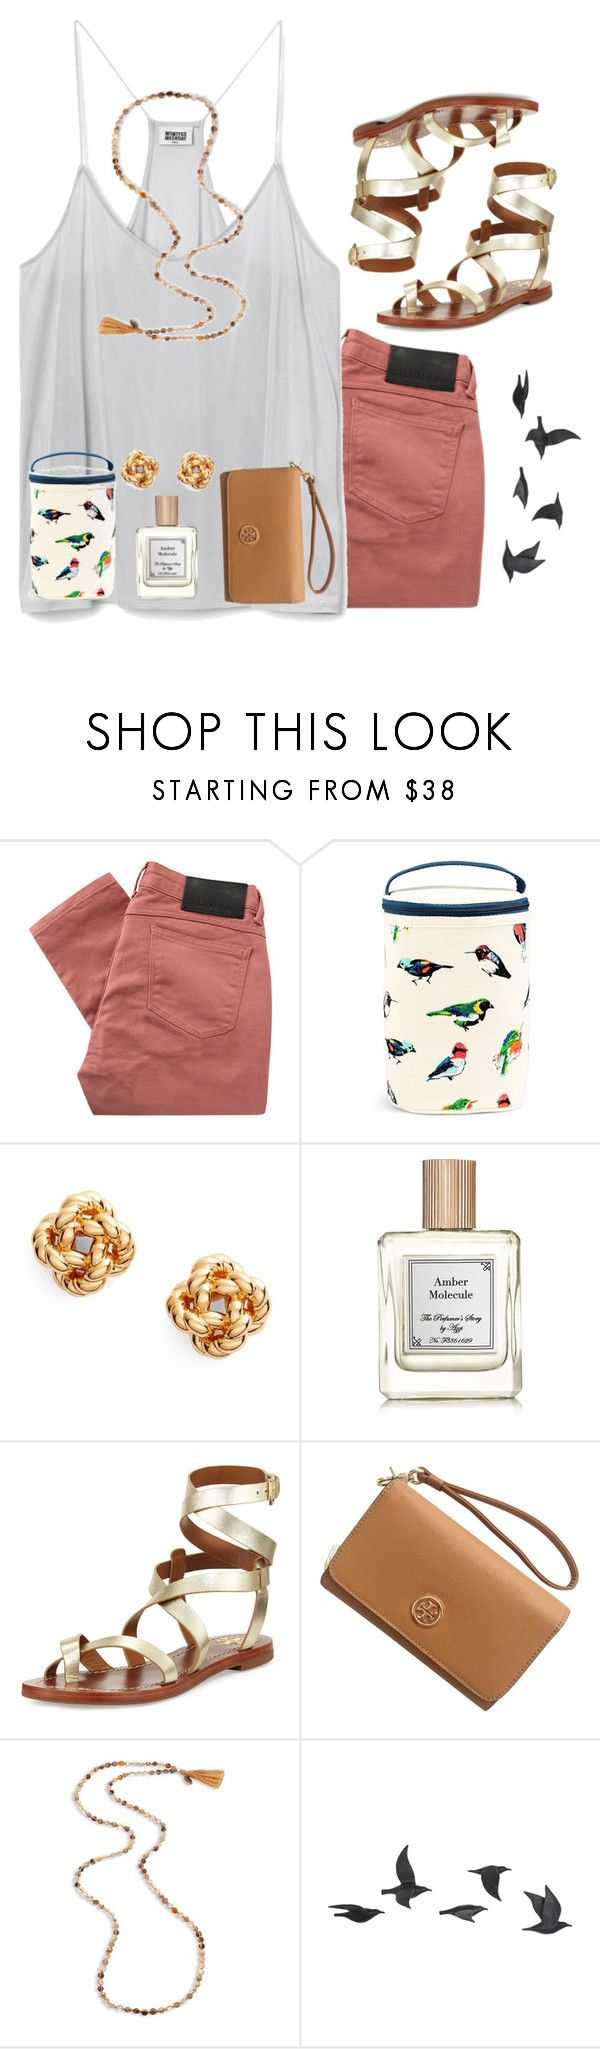 """""""•once upon a time a little birdy told me...•"""" by livnewell ❤ liked on Polyvore featuring Religion Clothing, Vera Bradley, Tory Burch, Chan Luu and Jayson Home"""